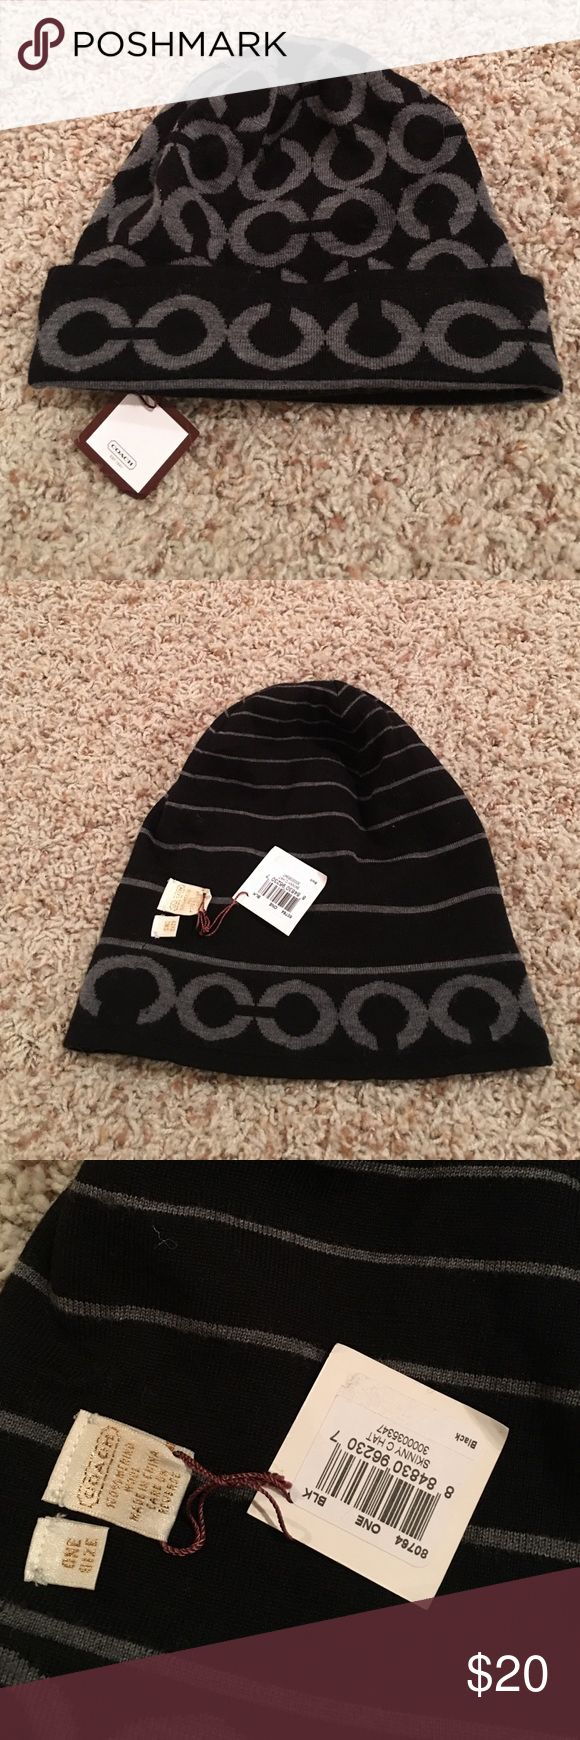 Coach beanie hat reversible This is a reversible Coach hat. New with tags. Smoke/pet free home. Coach Accessories Hats